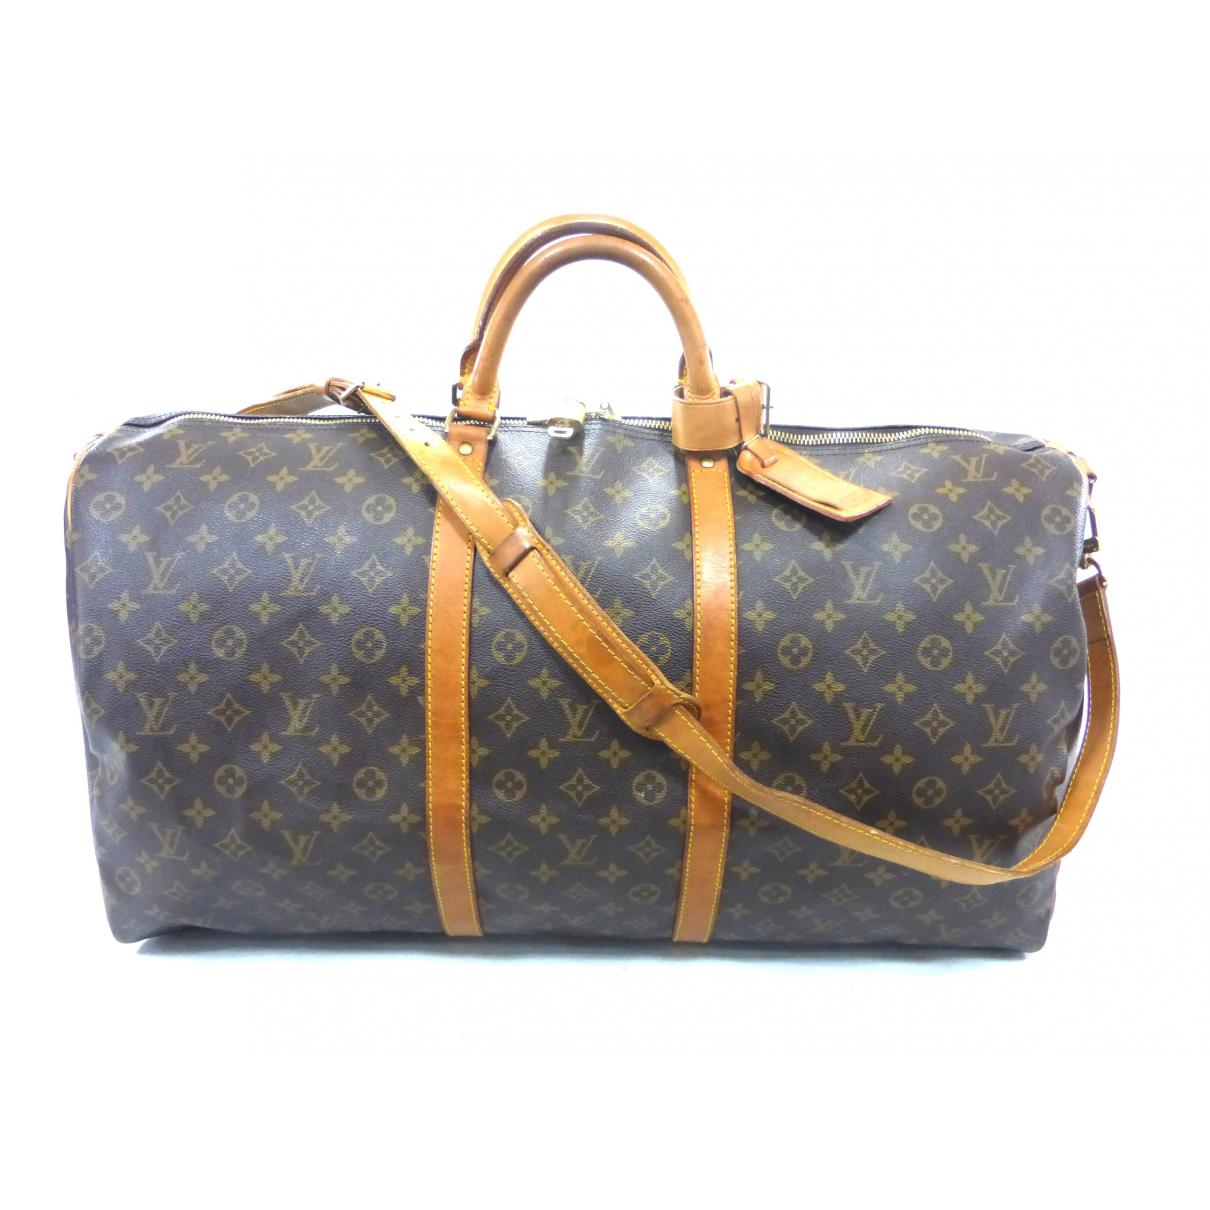 5798e610ea3e Louis Vuitton. Women s Pre-owned Vintage Keepall Brown Cloth Travel Bags